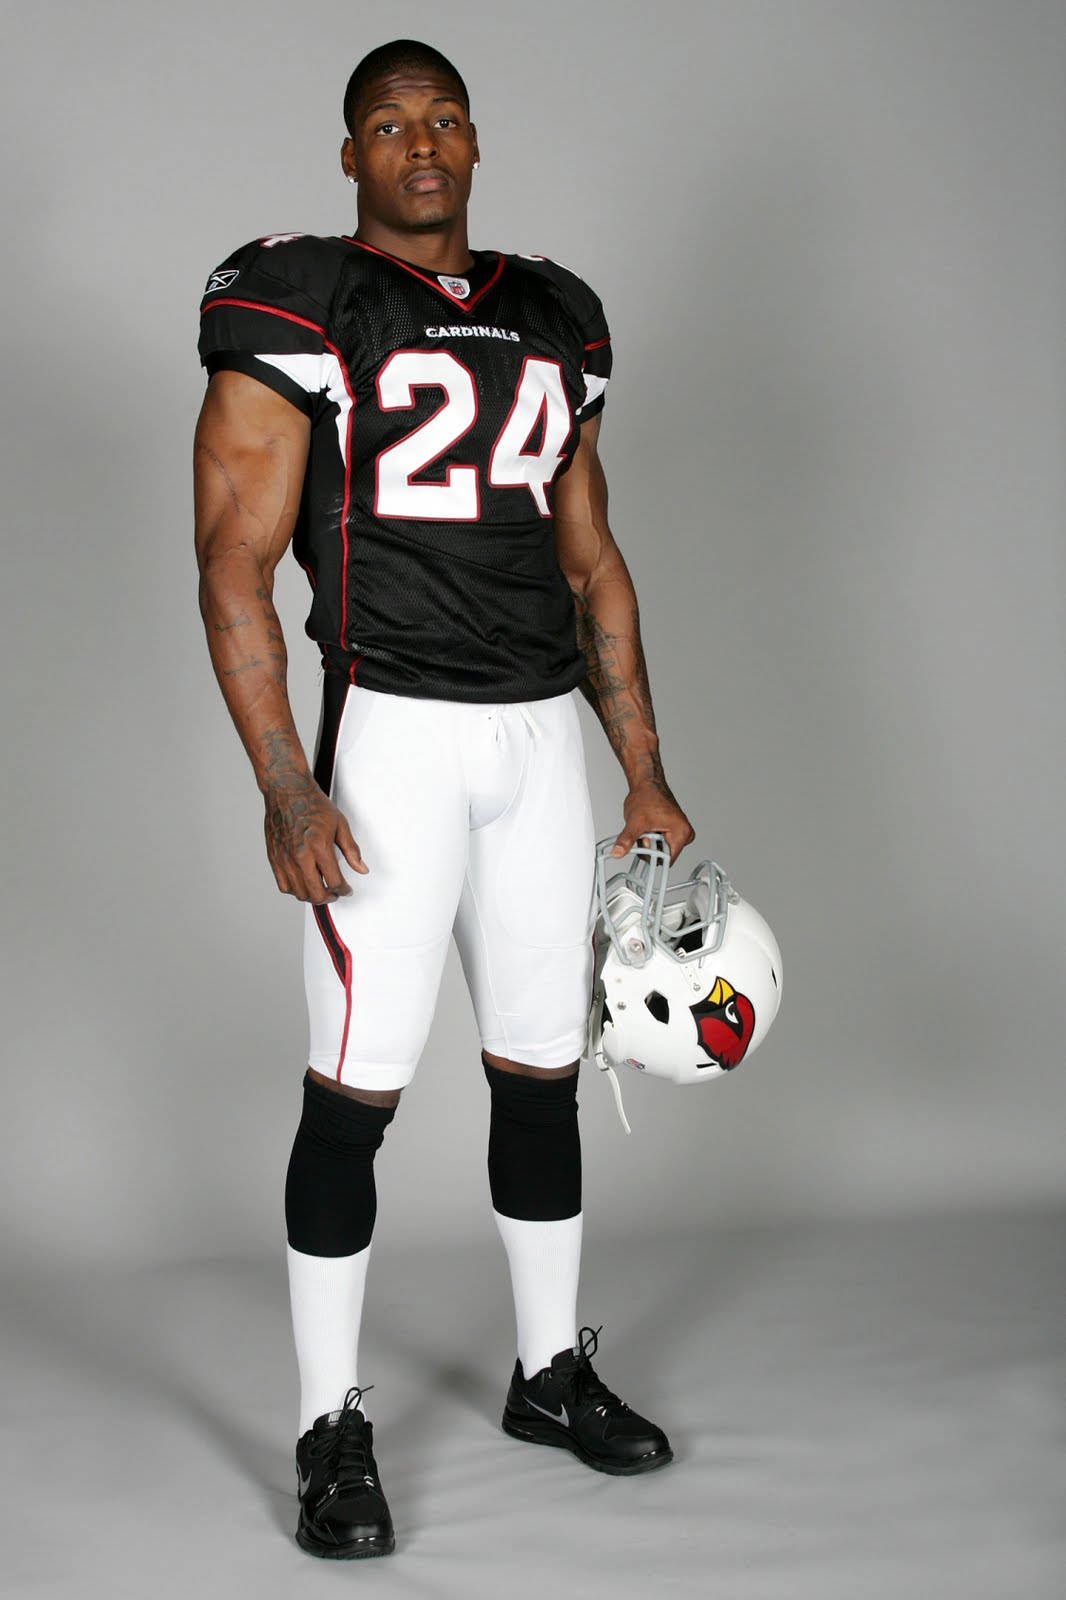 Bmac s Blog  2010 NFL Alternates and Throwbacks 841336848